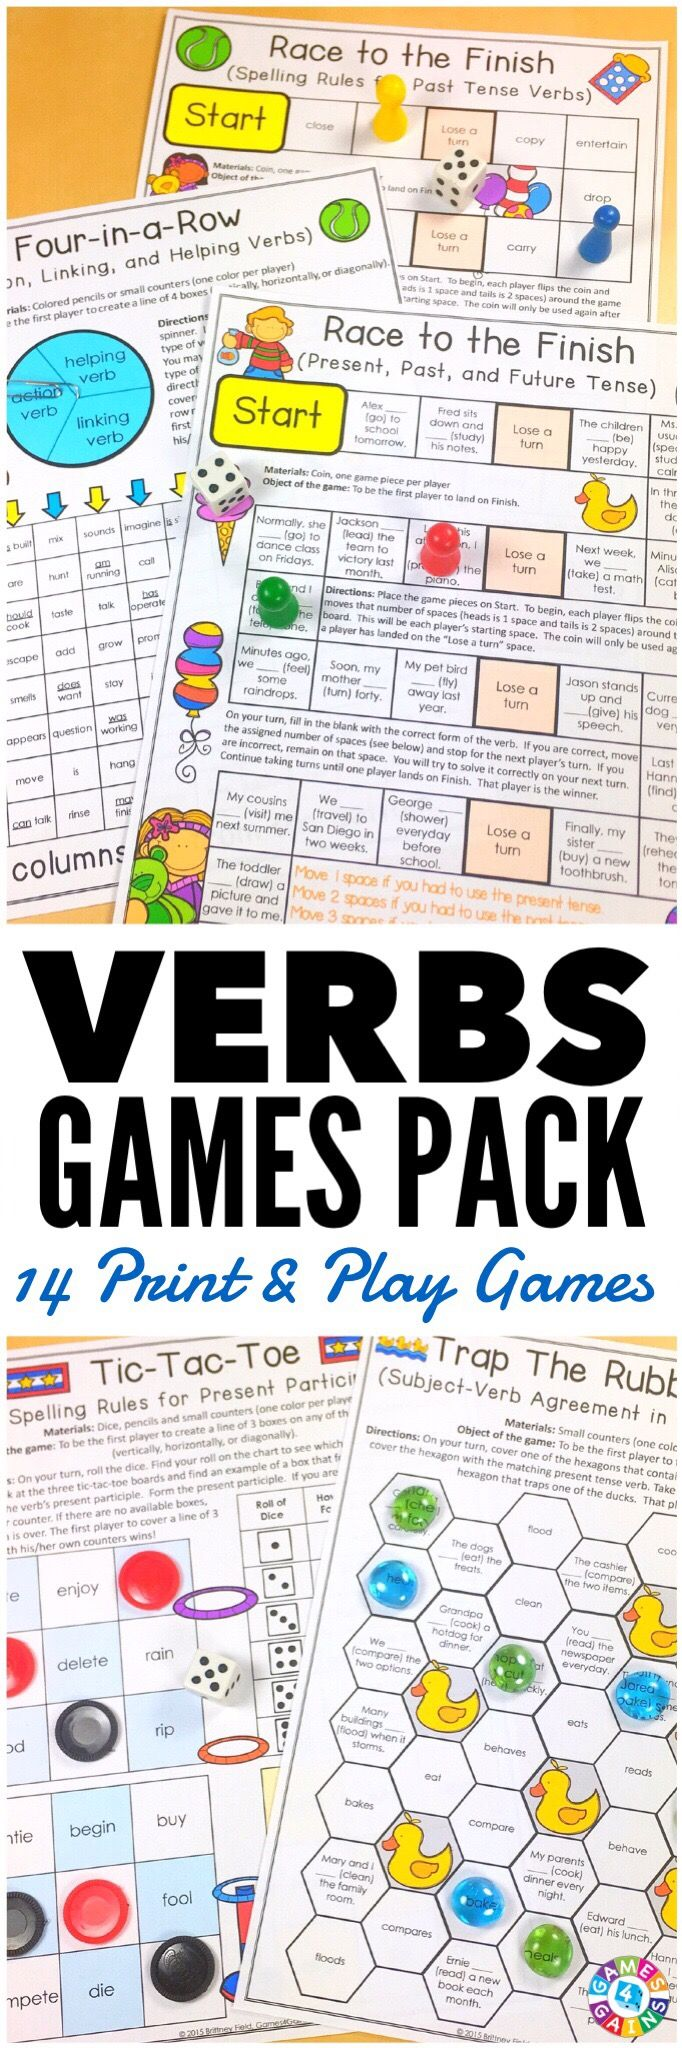 """""""LOVE these low-prep games! My students have so much fun playing them!"""" This Verbs Games Pack contains 14 fun and engaging printable board games to help students to practice action verbs, linking verbs, helping verbs, past tense verbs, present tense verbs, future tense verbs, irregular verbs, and much more!"""